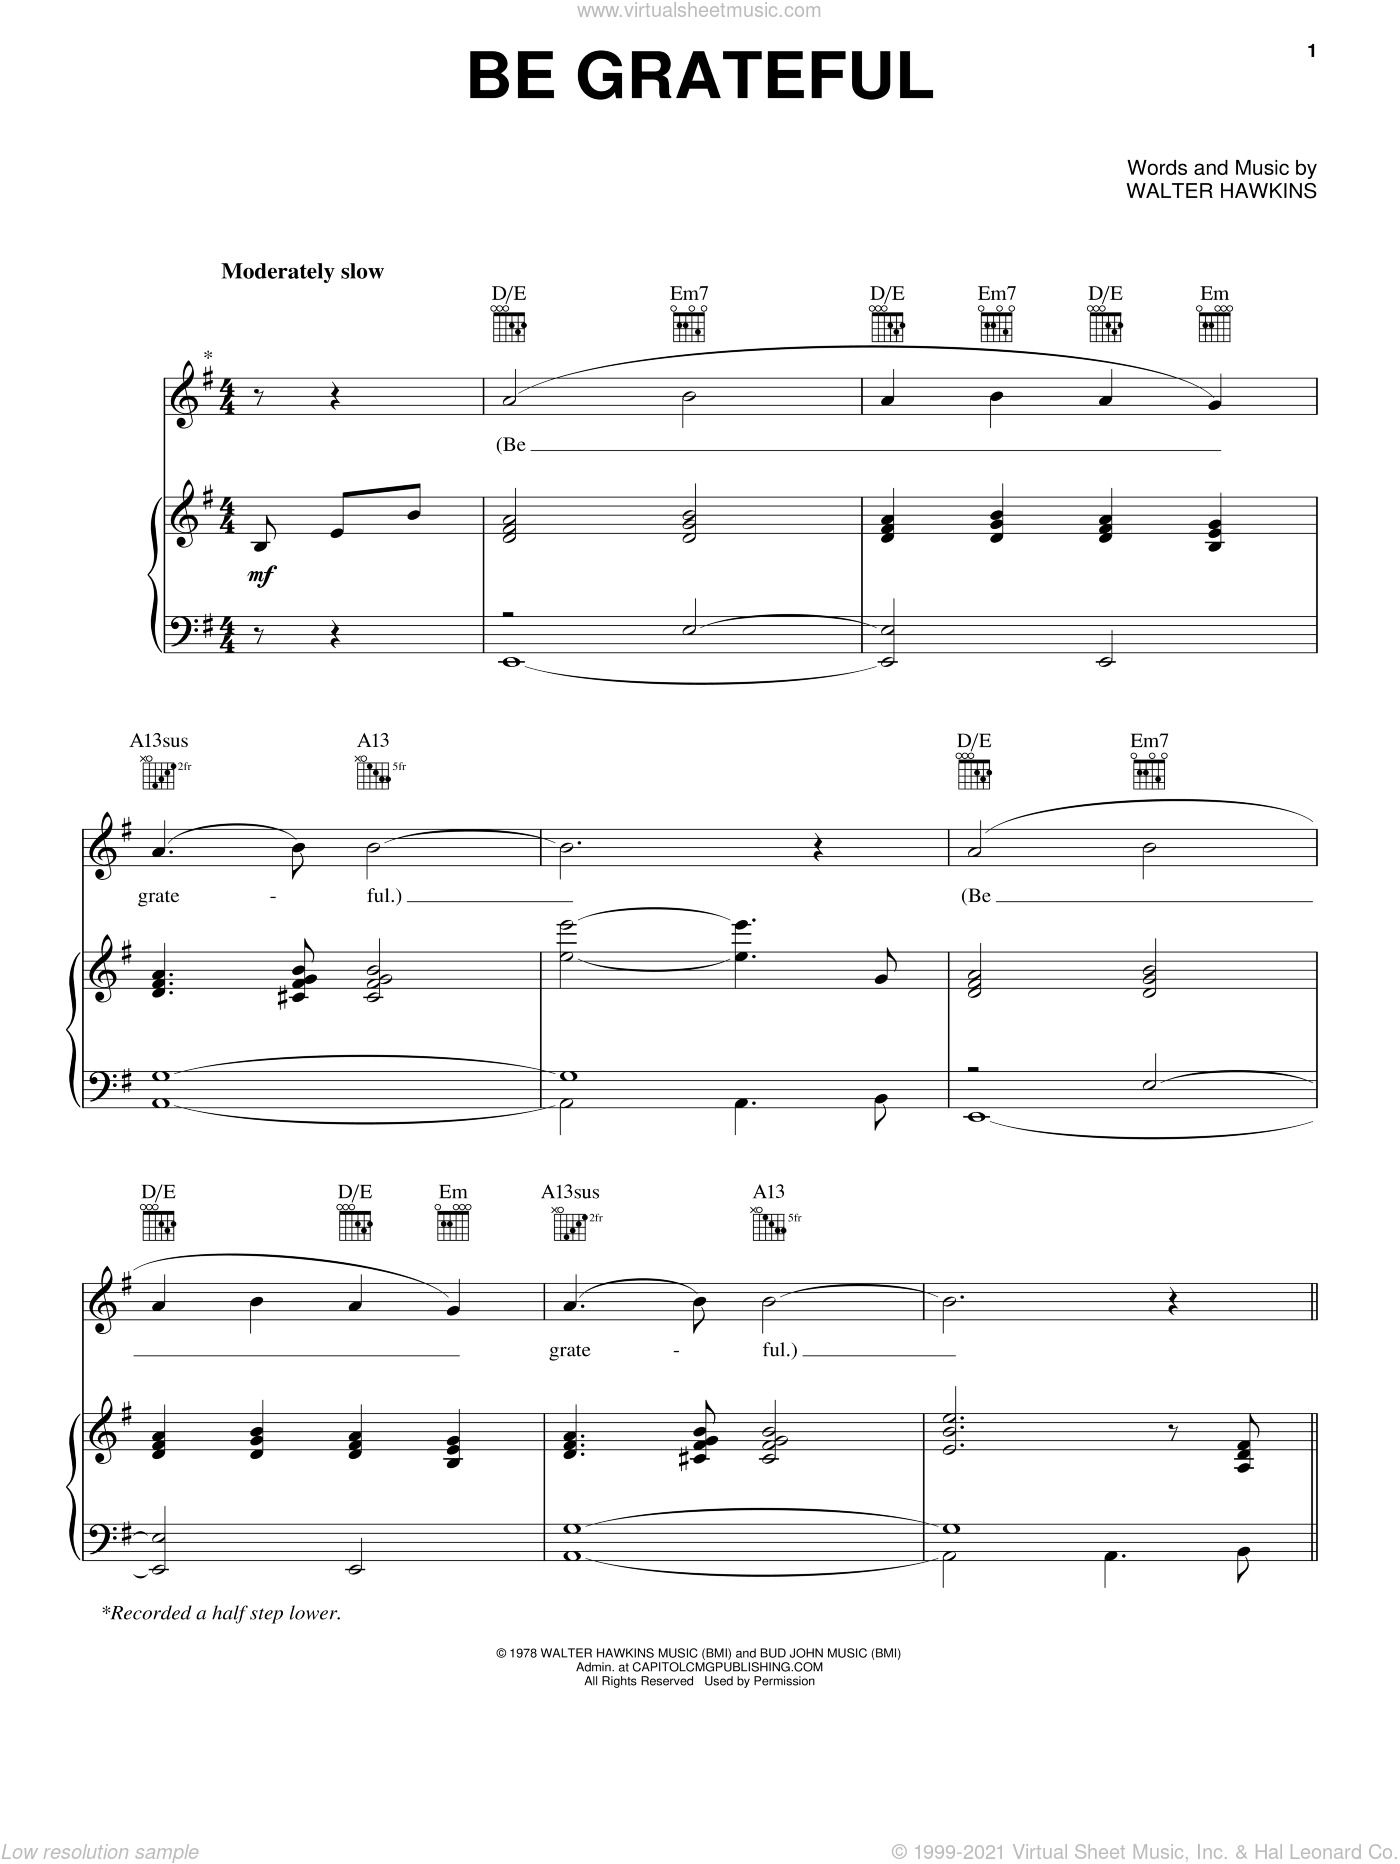 Be Grateful sheet music for voice, piano or guitar by Walter Hawkins, intermediate skill level